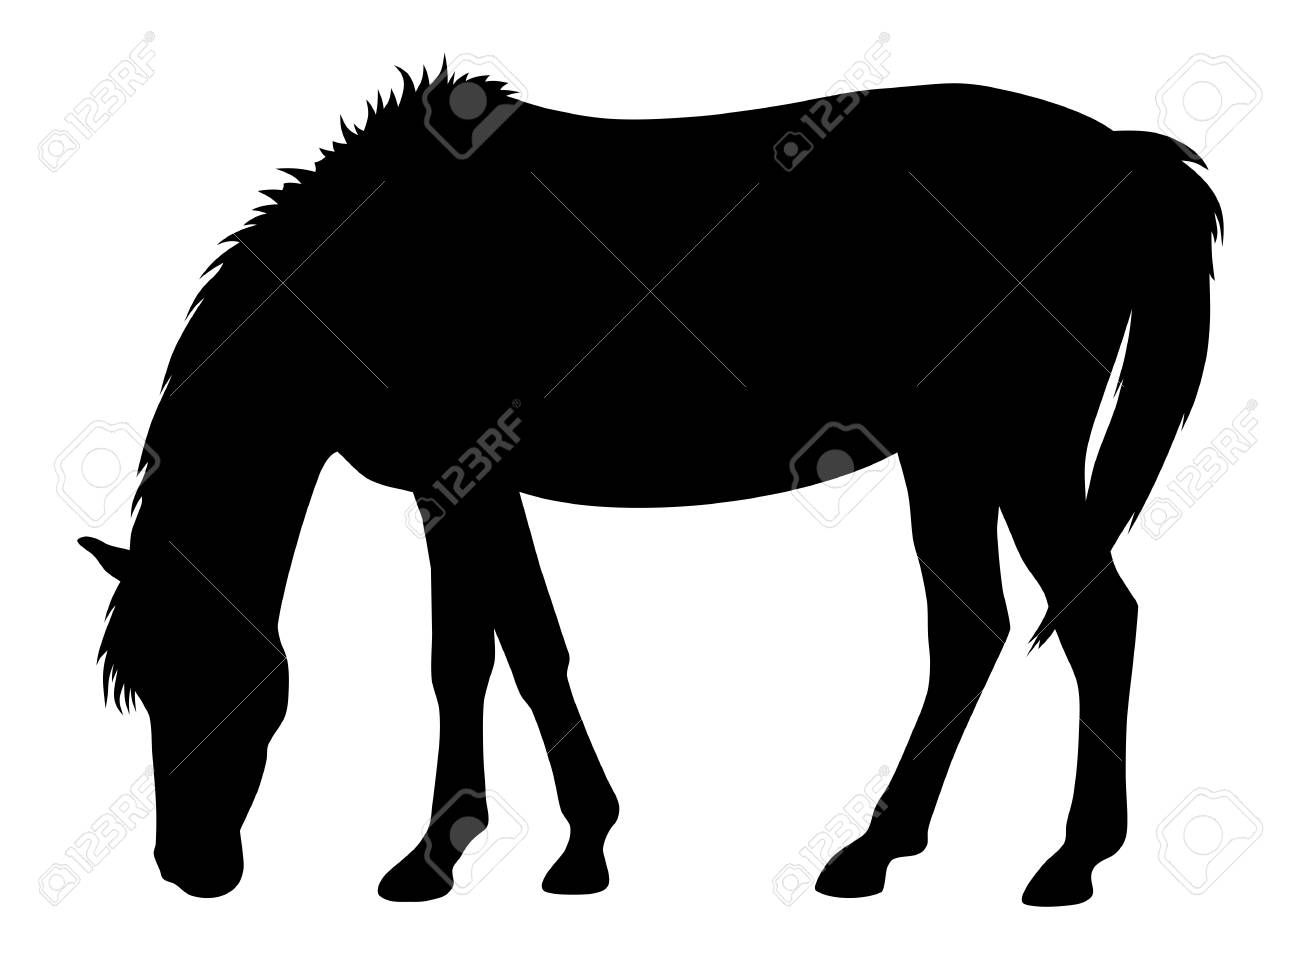 Vector Illustration Of Horse Silhouette Affiliate Illustration Vector Silhouette Horse Horse Silhouette Vector Illustration Horses